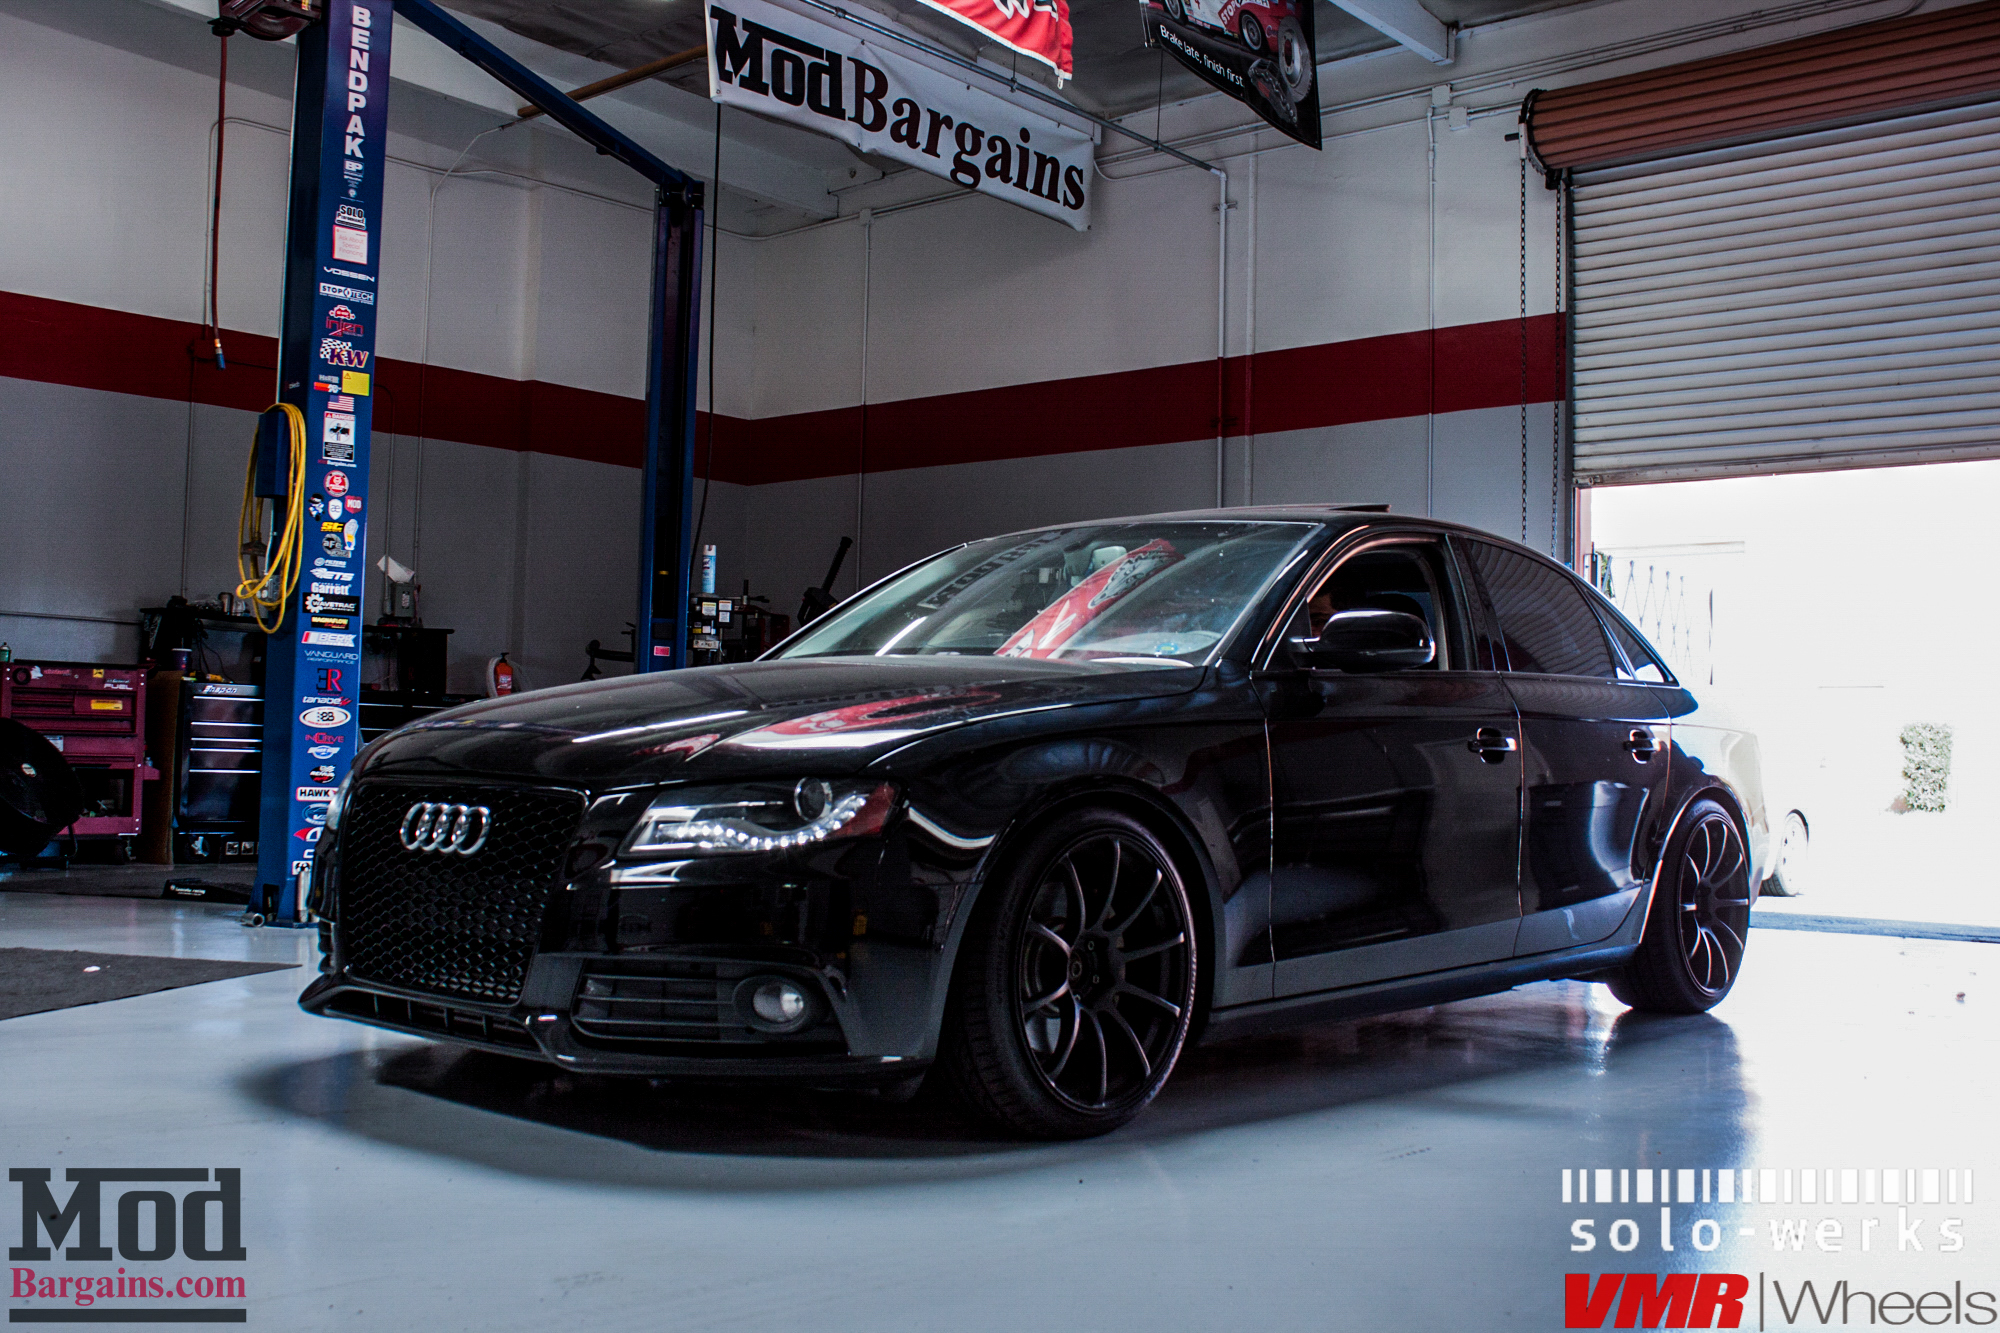 b8 audi a4 on solo werks coilovers gets rs4 grille. Black Bedroom Furniture Sets. Home Design Ideas